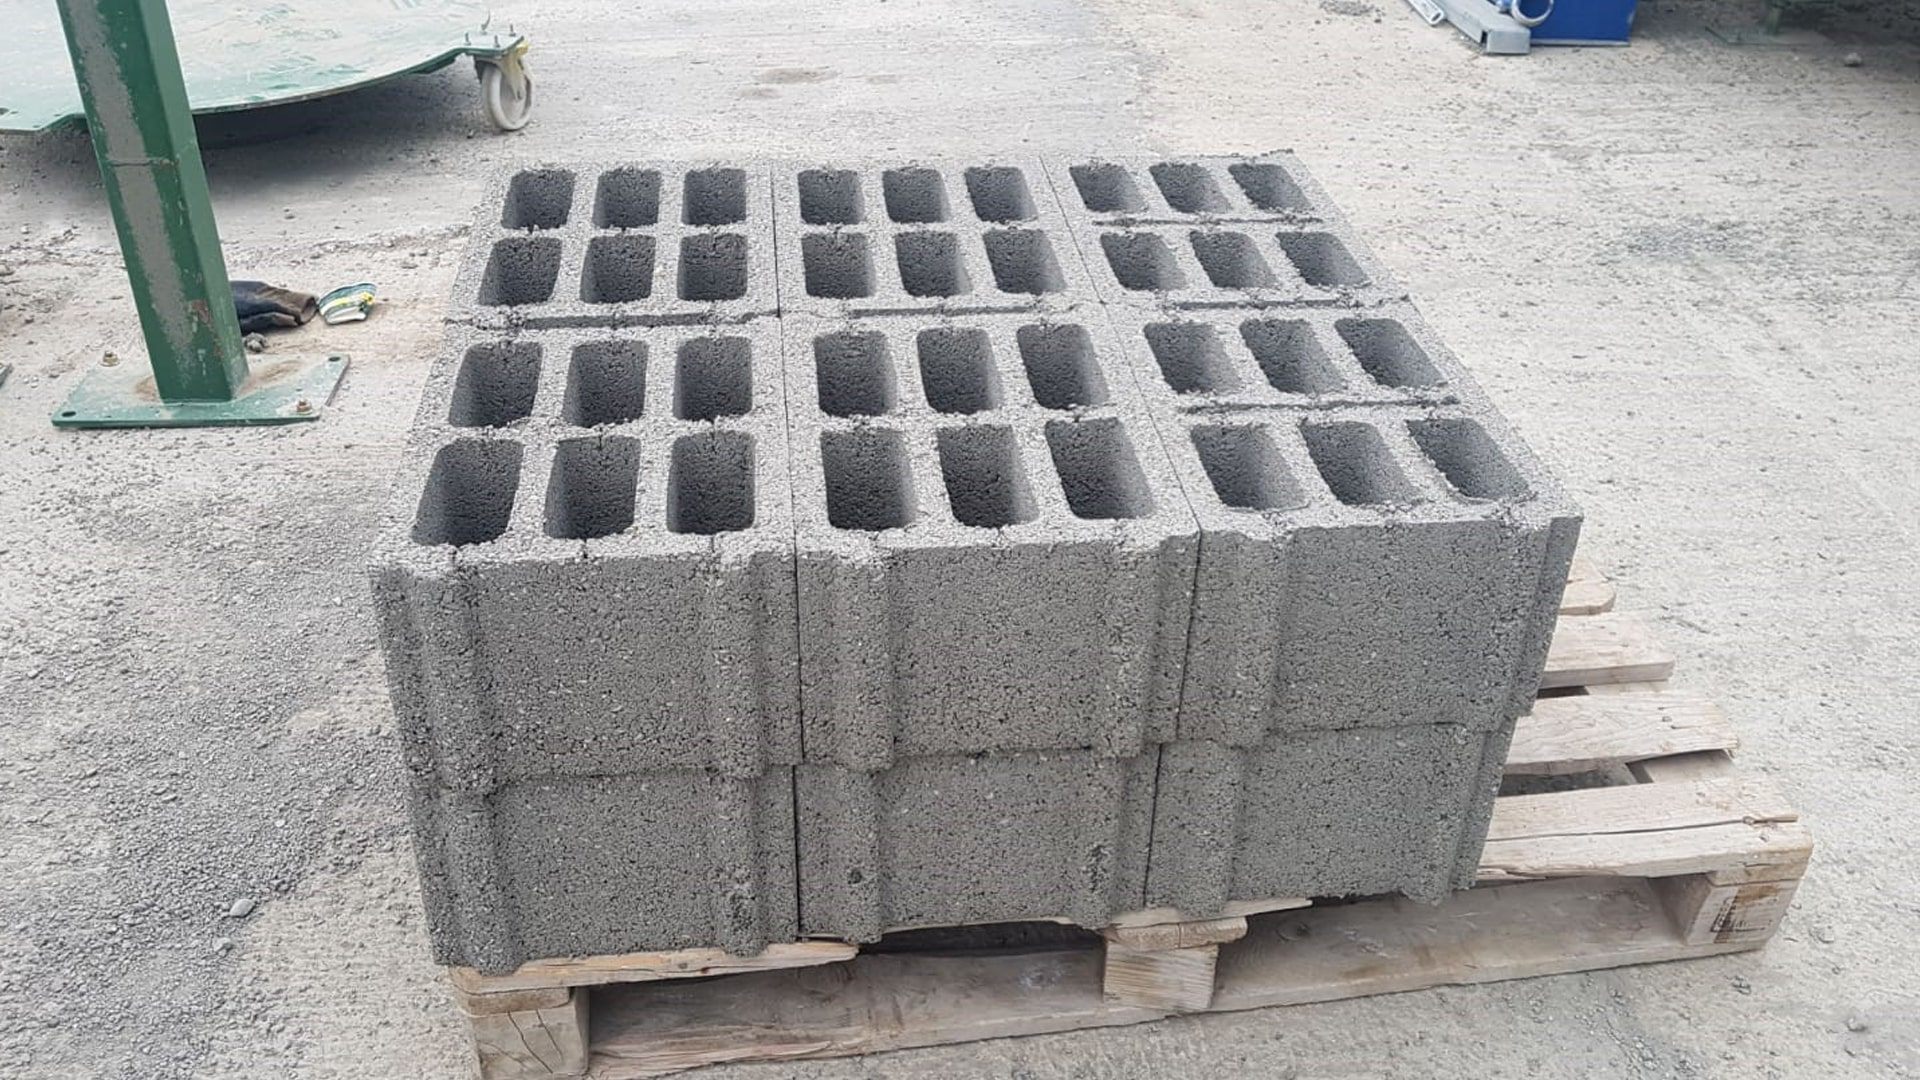 hollow_block_machine_product_sample.jpg